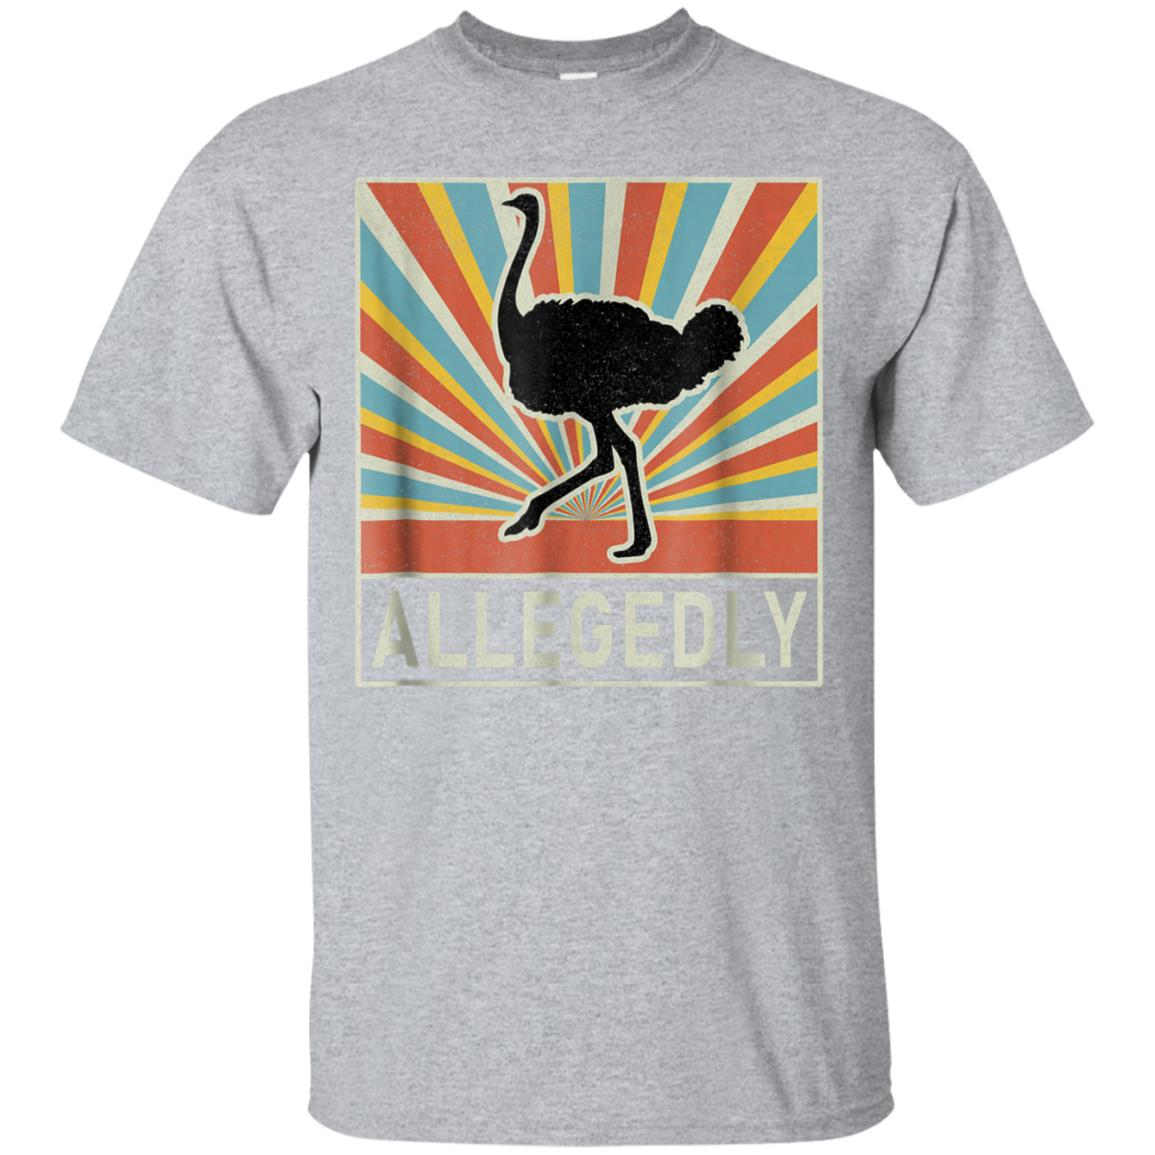 Vintage Allegedly Ostrich Retro T-Shirt - Ostrich Lover Gift 99promocode